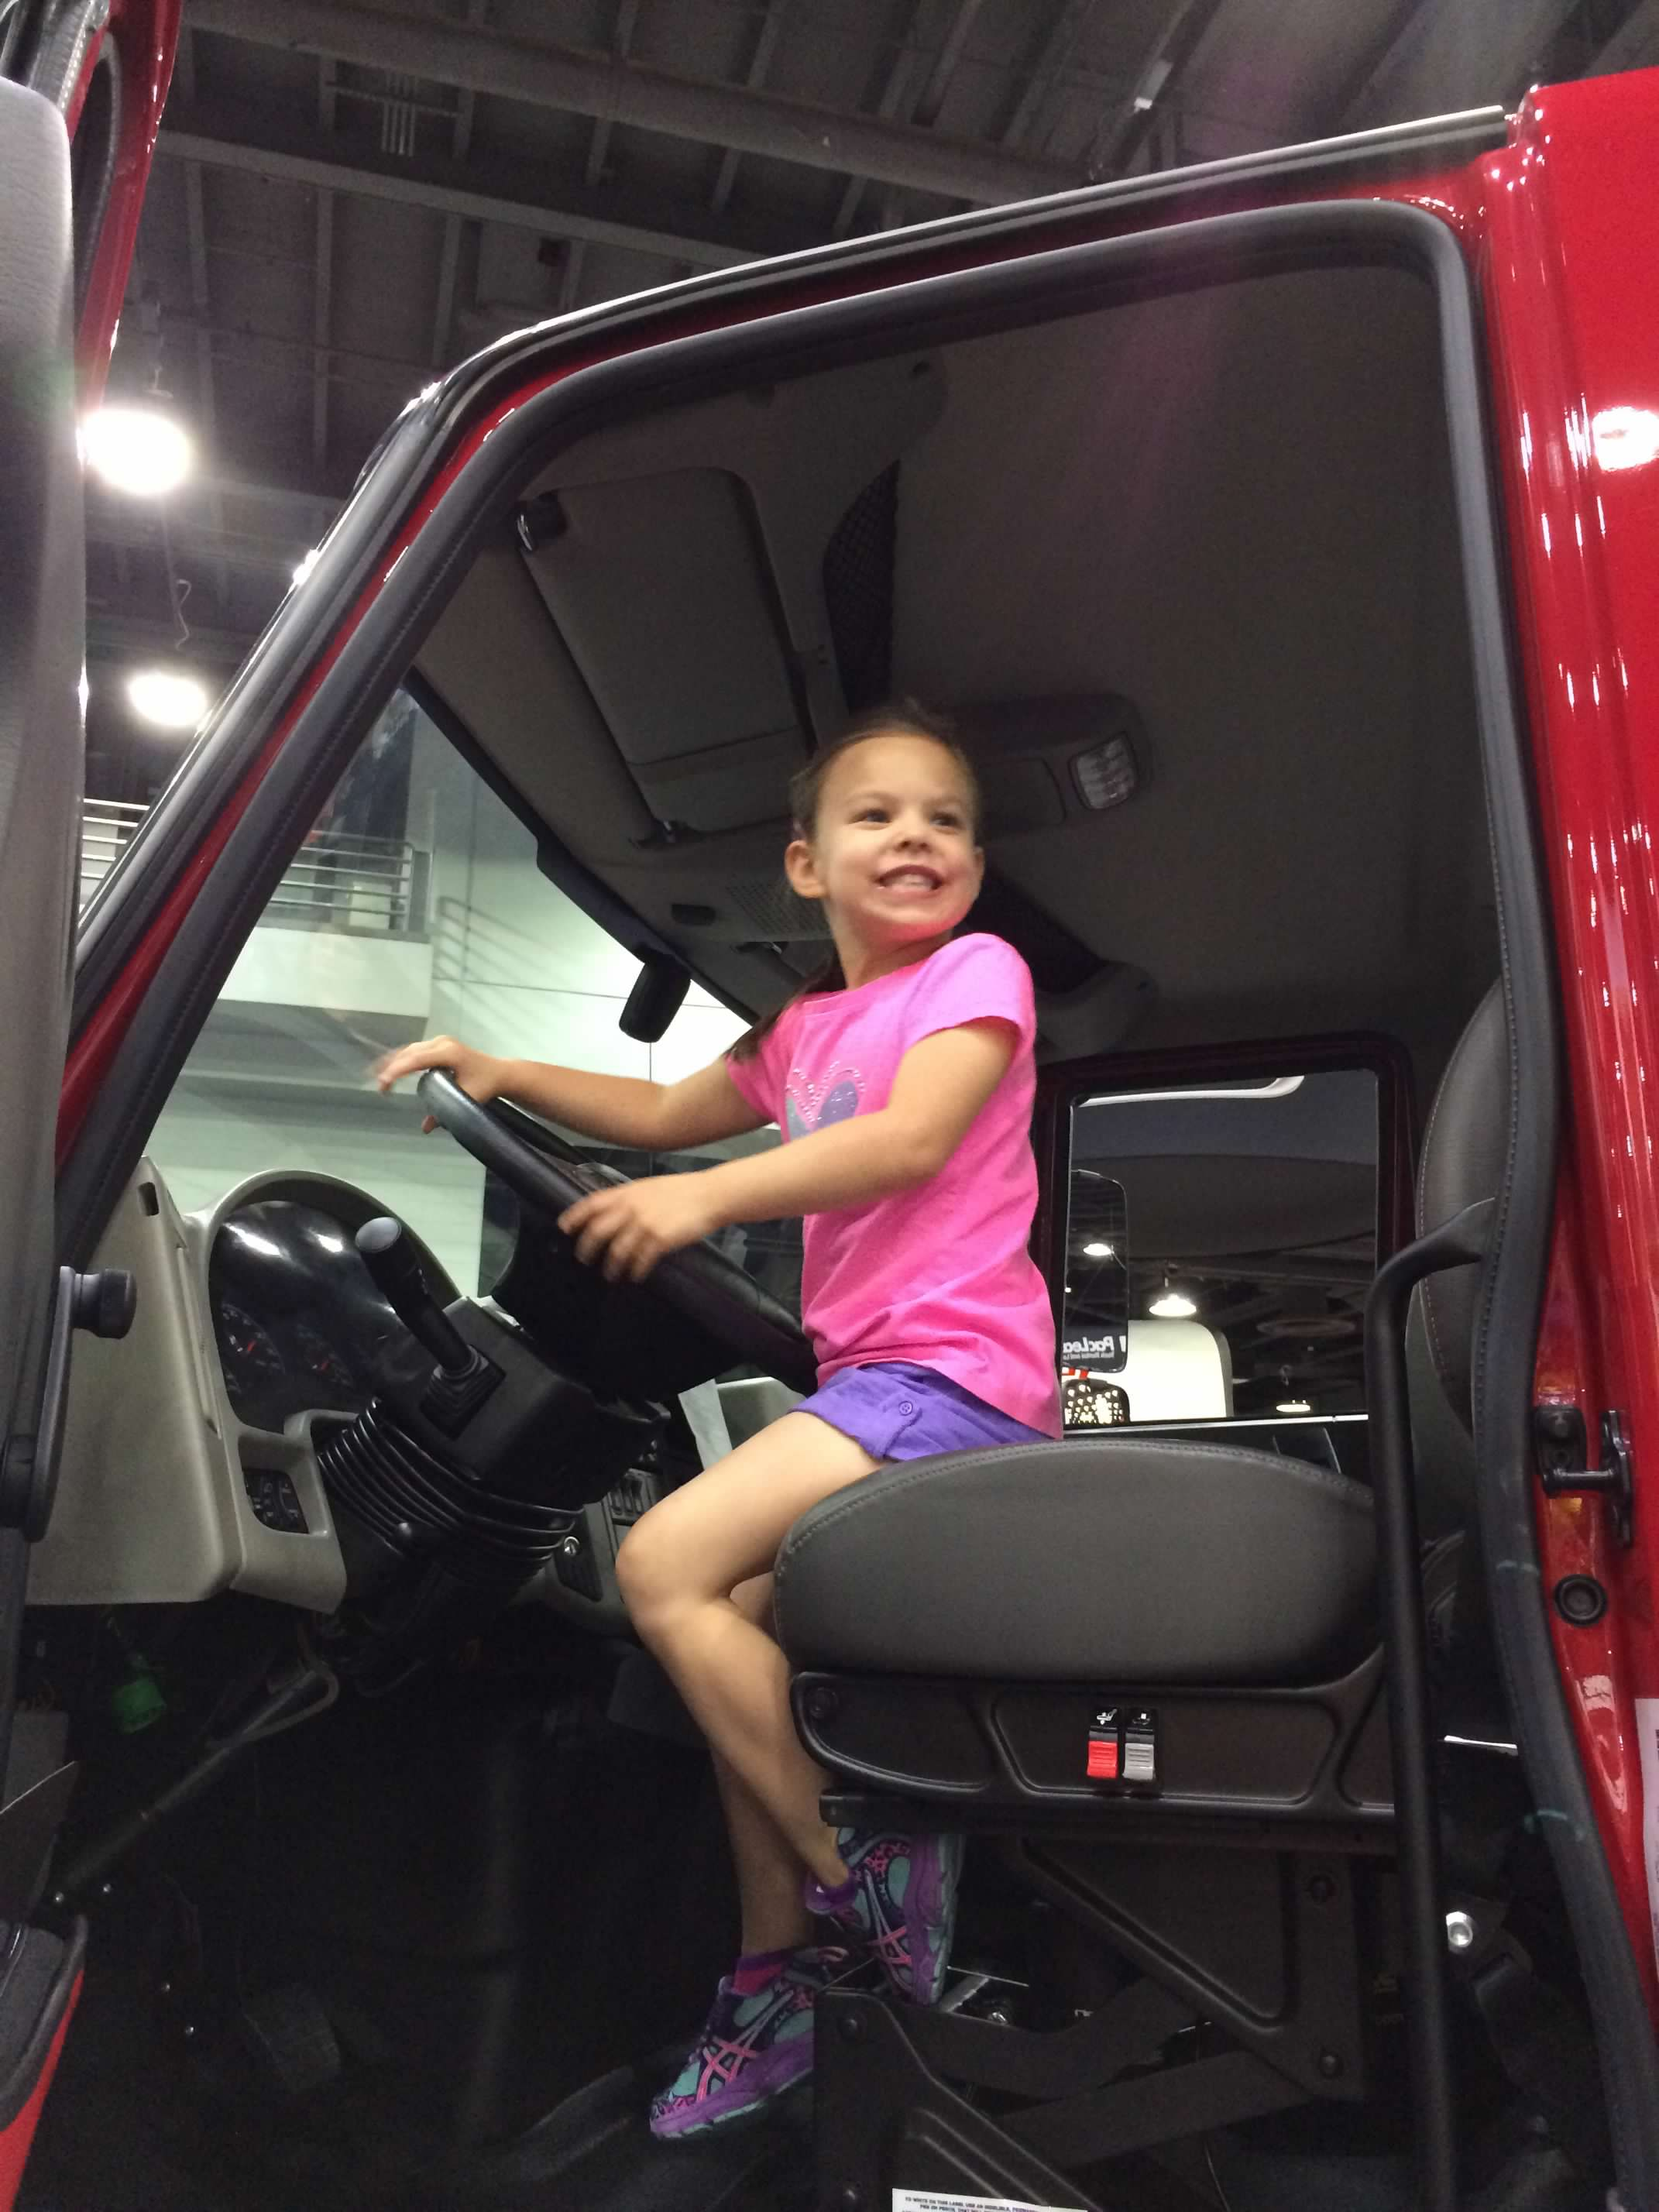 Mari-Roberts-Who-says-trucks-are-for-boys-photo-contest